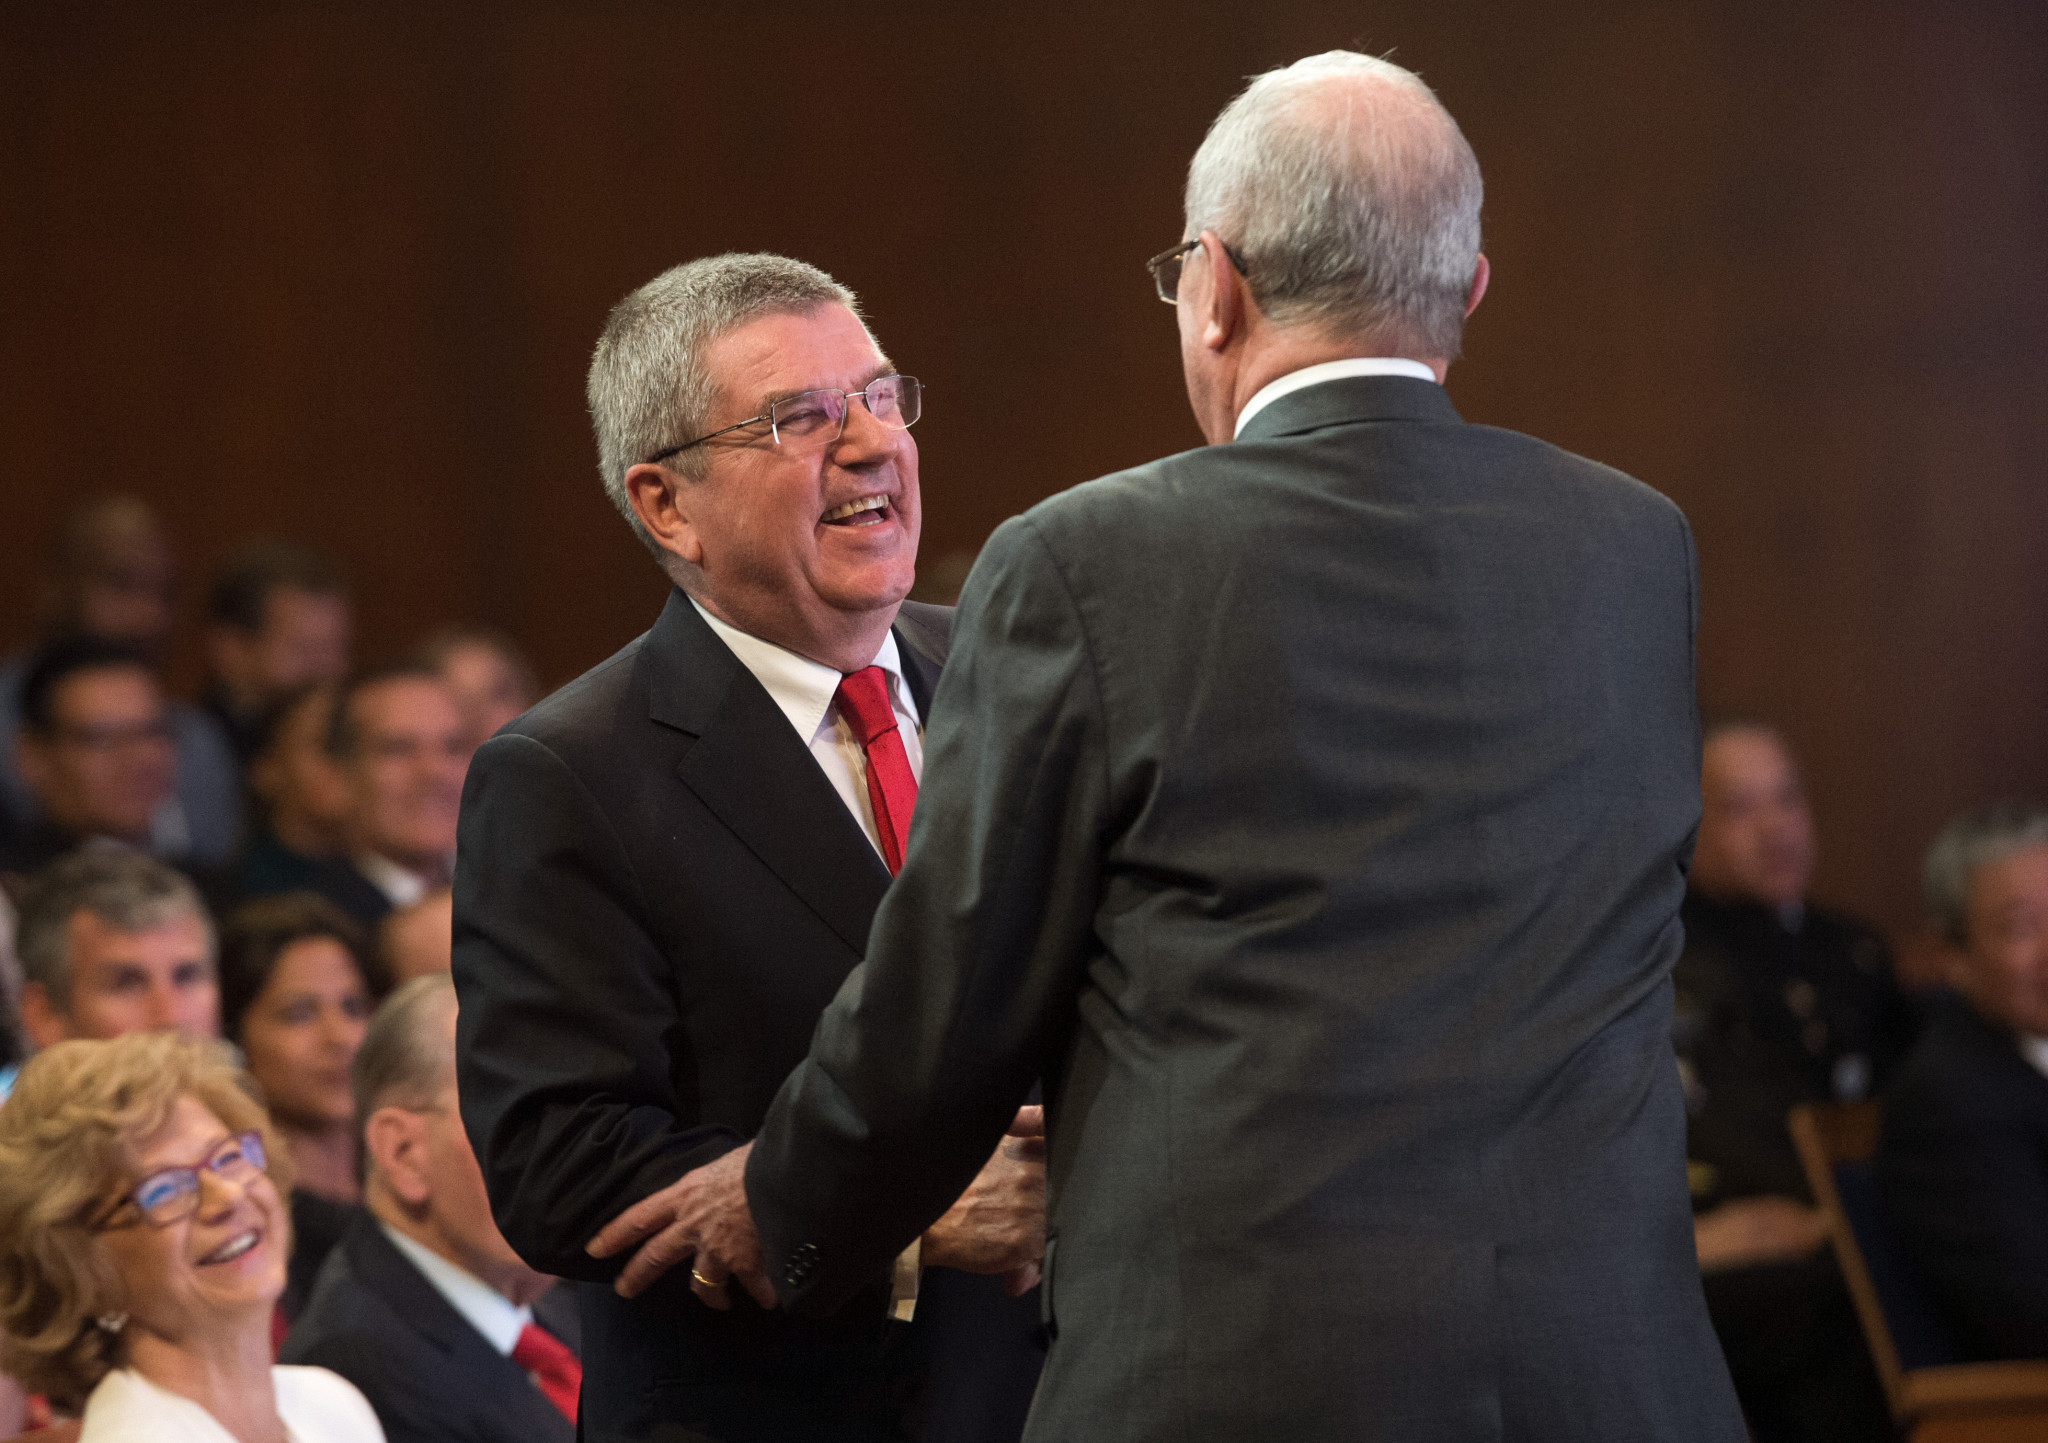 He was greeted by IOC President Thomas Bach afterwards ©Getty Images